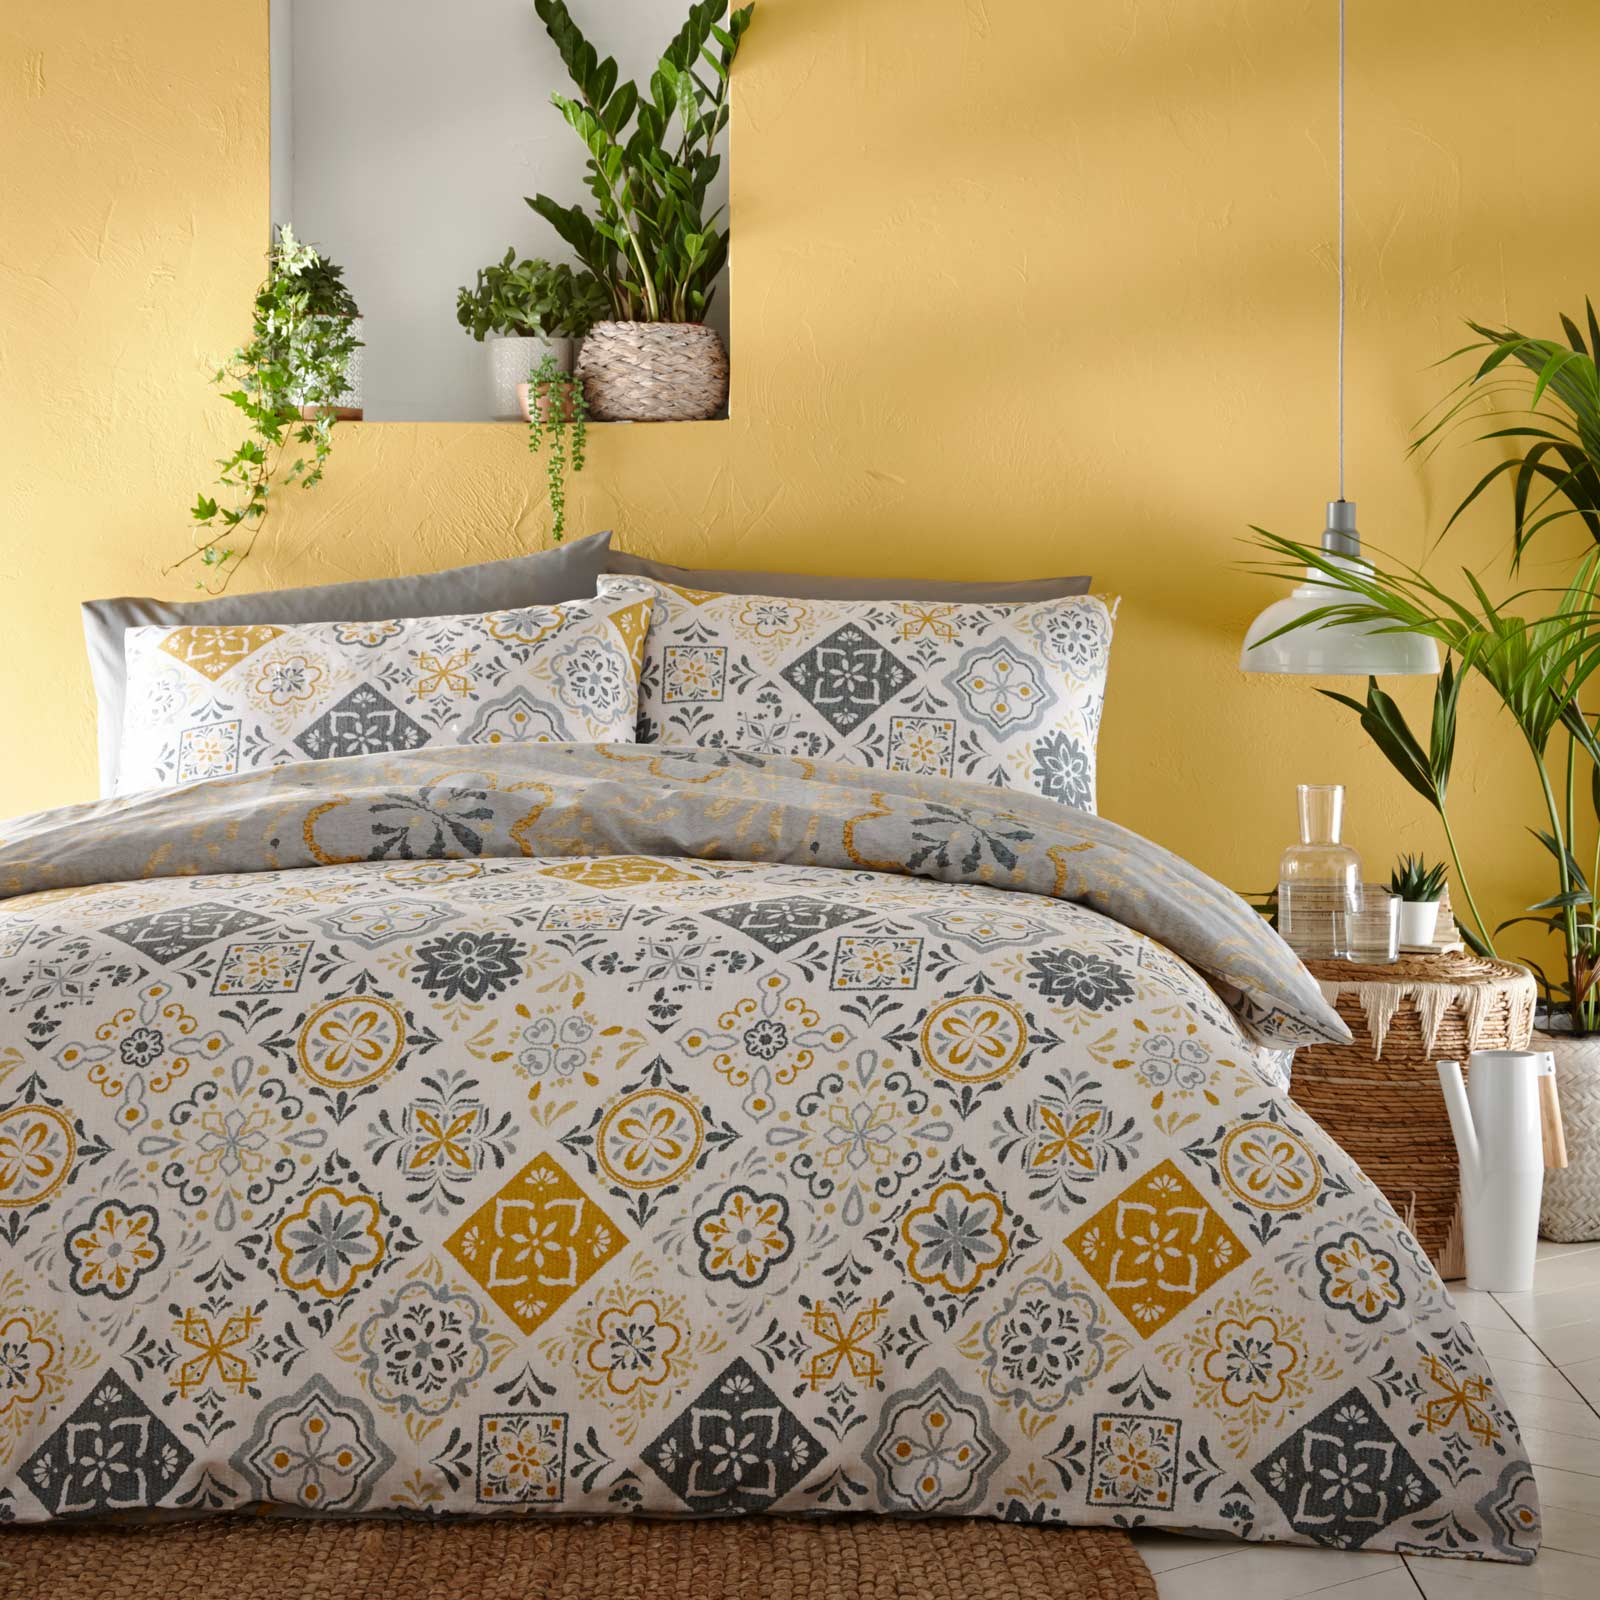 Morocco Tile Print Reversible Ochre Duvet Cover Set - Single - Ideal Textiles